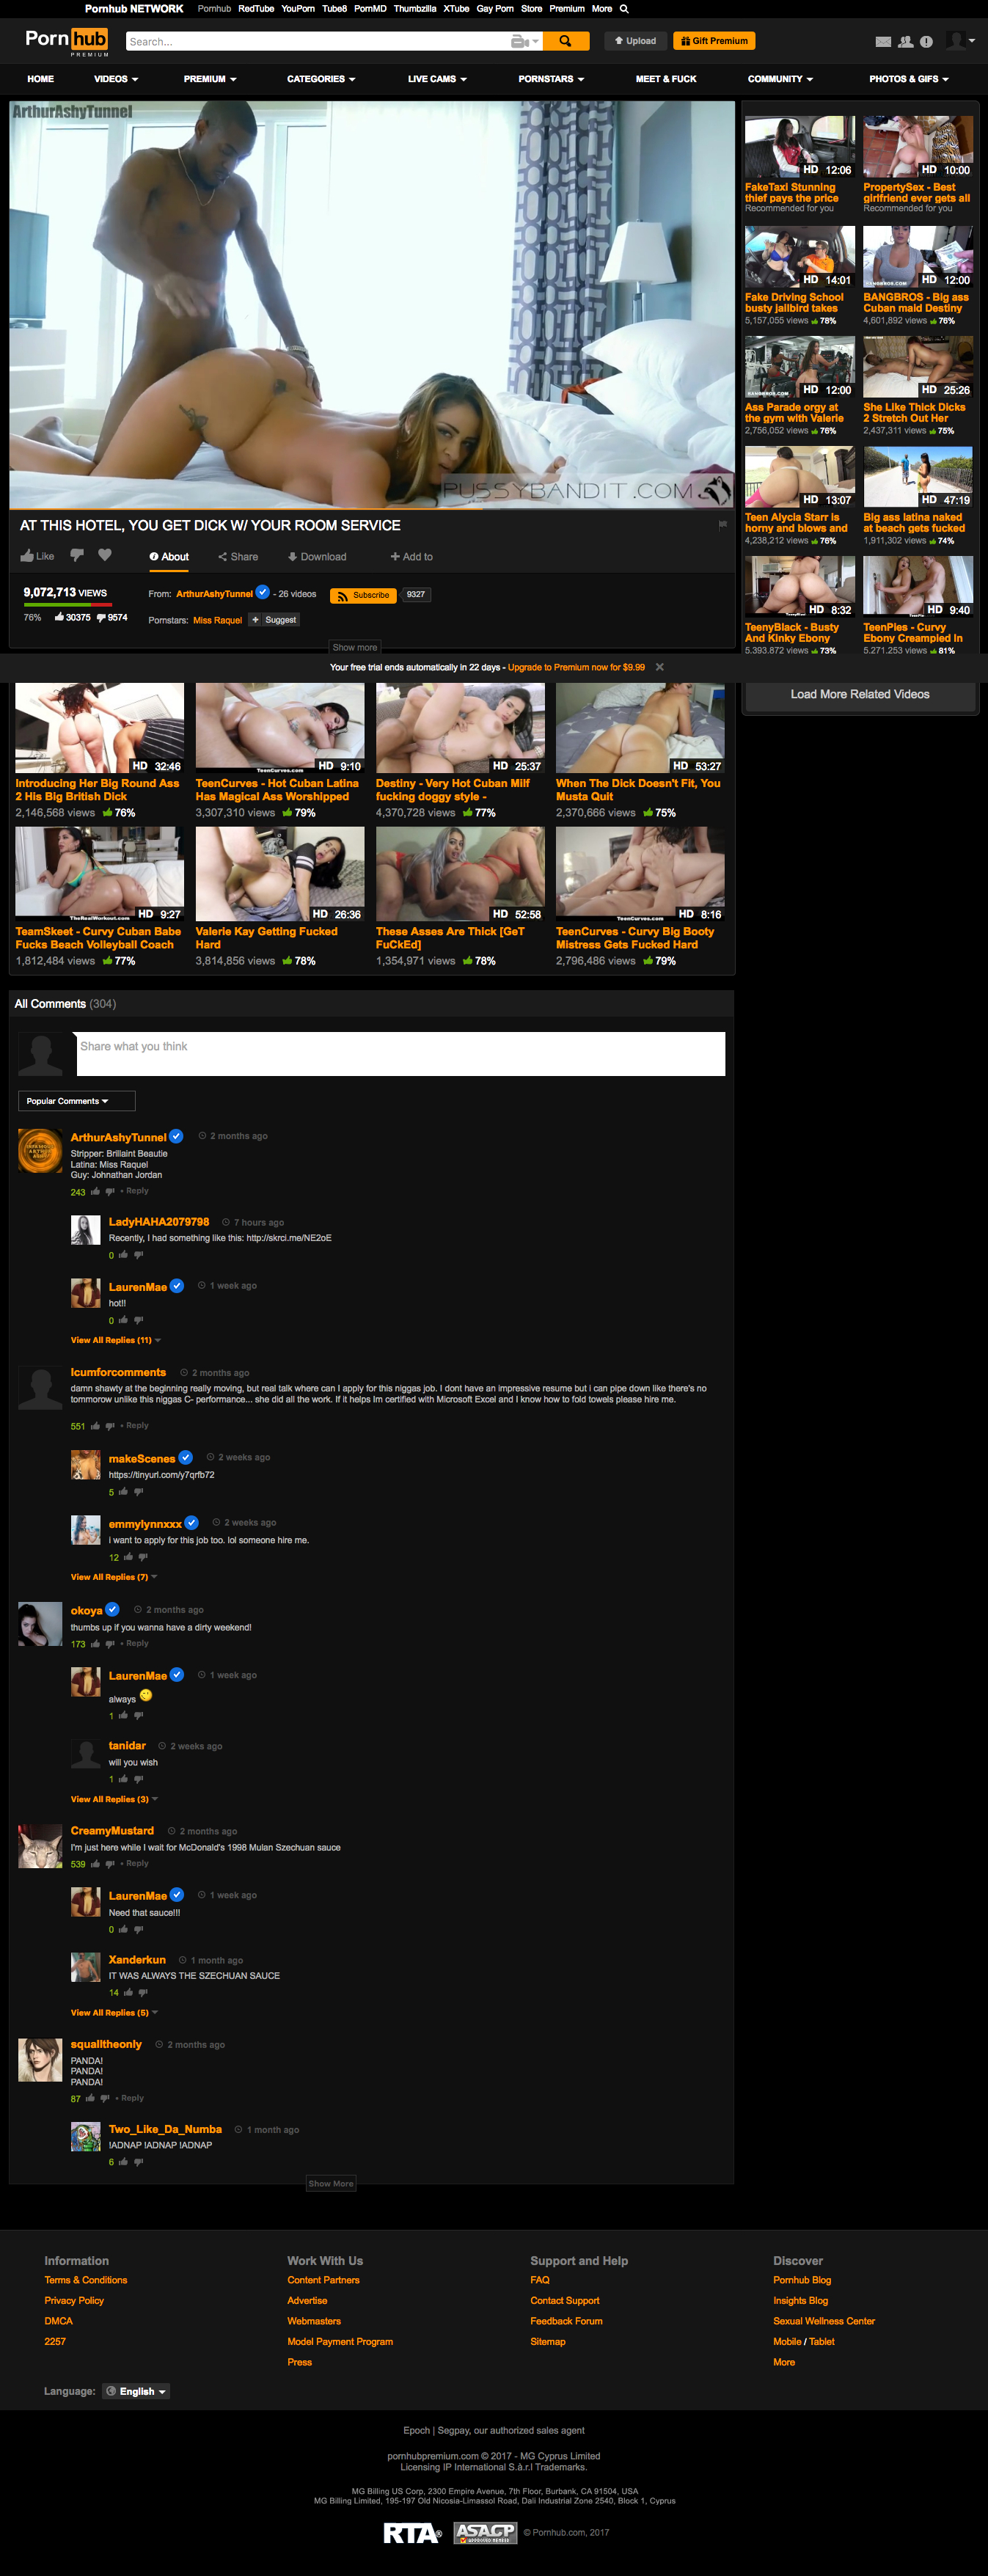 pornhub premium review